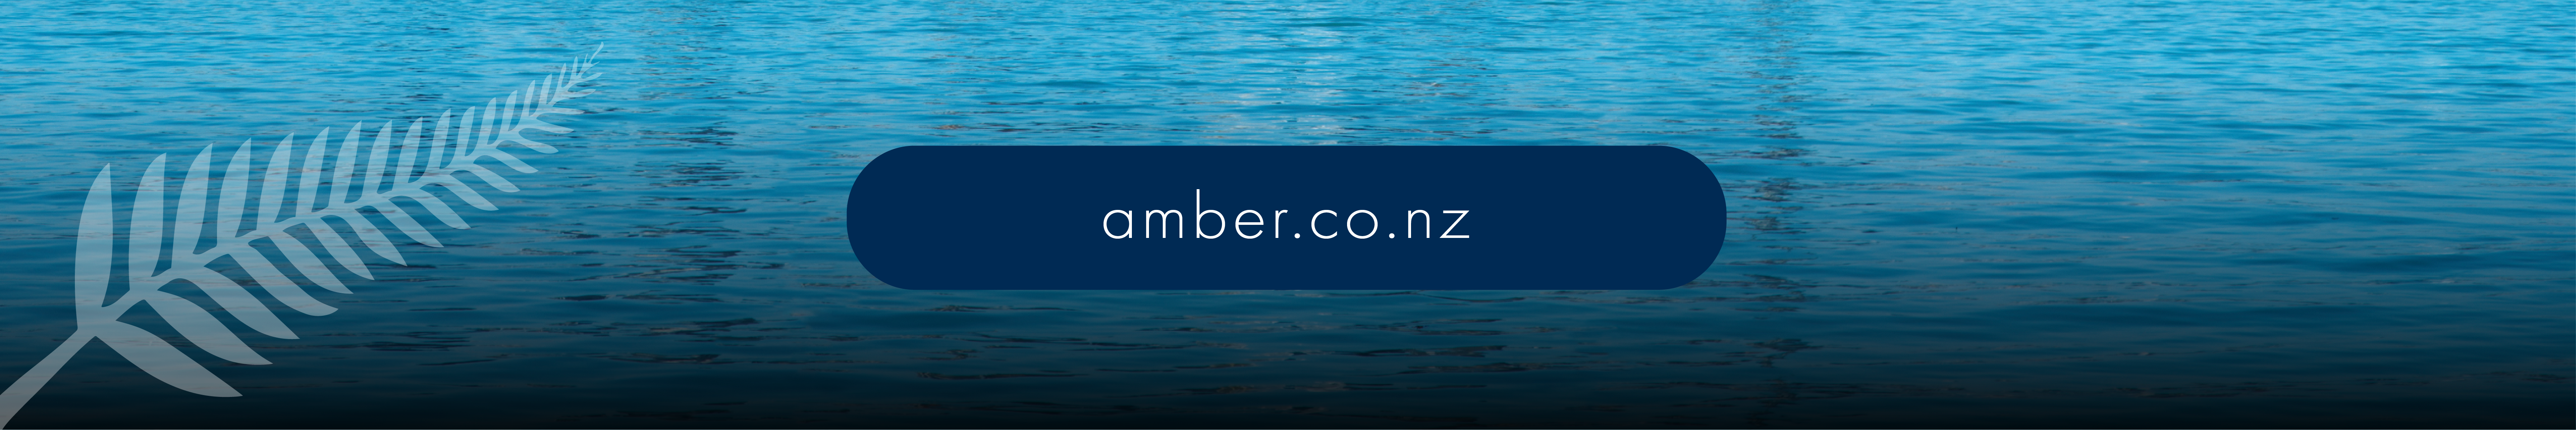 NZ Commercial Footer NEW 2020-01